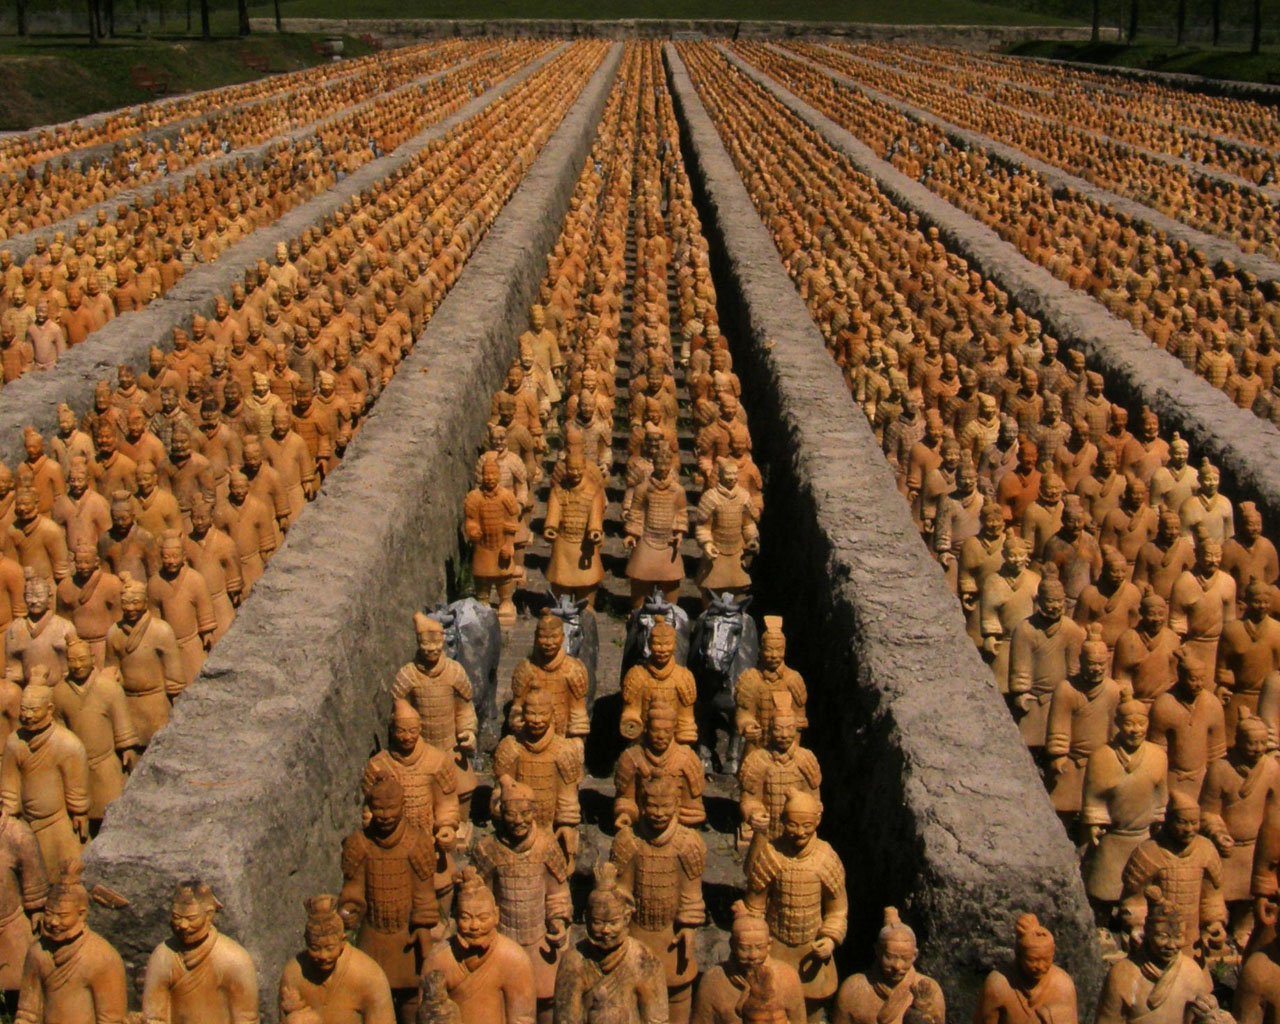 https://upload.wikimedia.org/wikipedia/commons/a/af/ForbiddenGardens-TerraCottaArmy_2008%274-crwpps.jpg